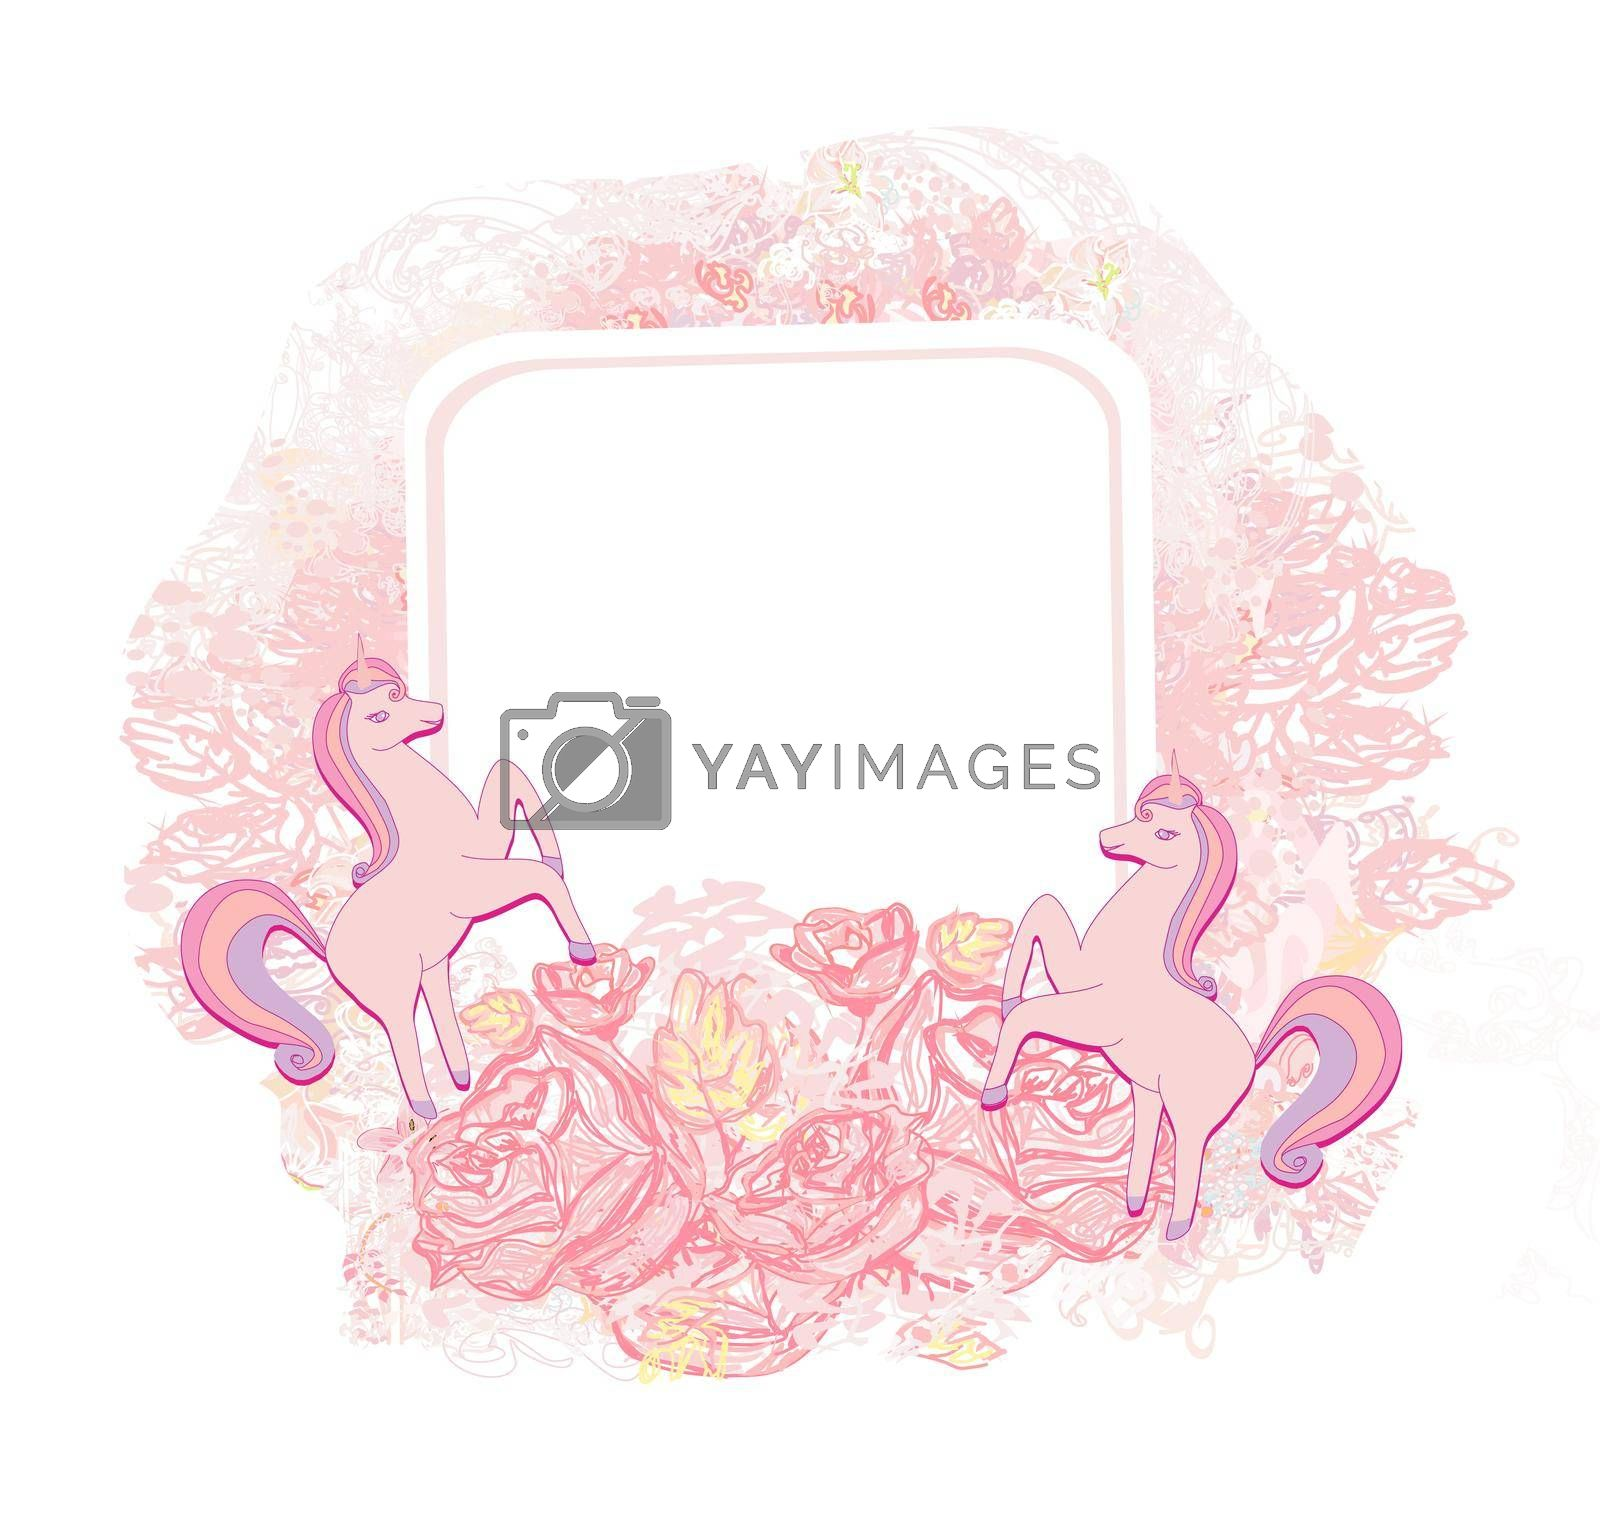 Royalty free image of decorative flower frame with beautiful unicorns by JackyBrown